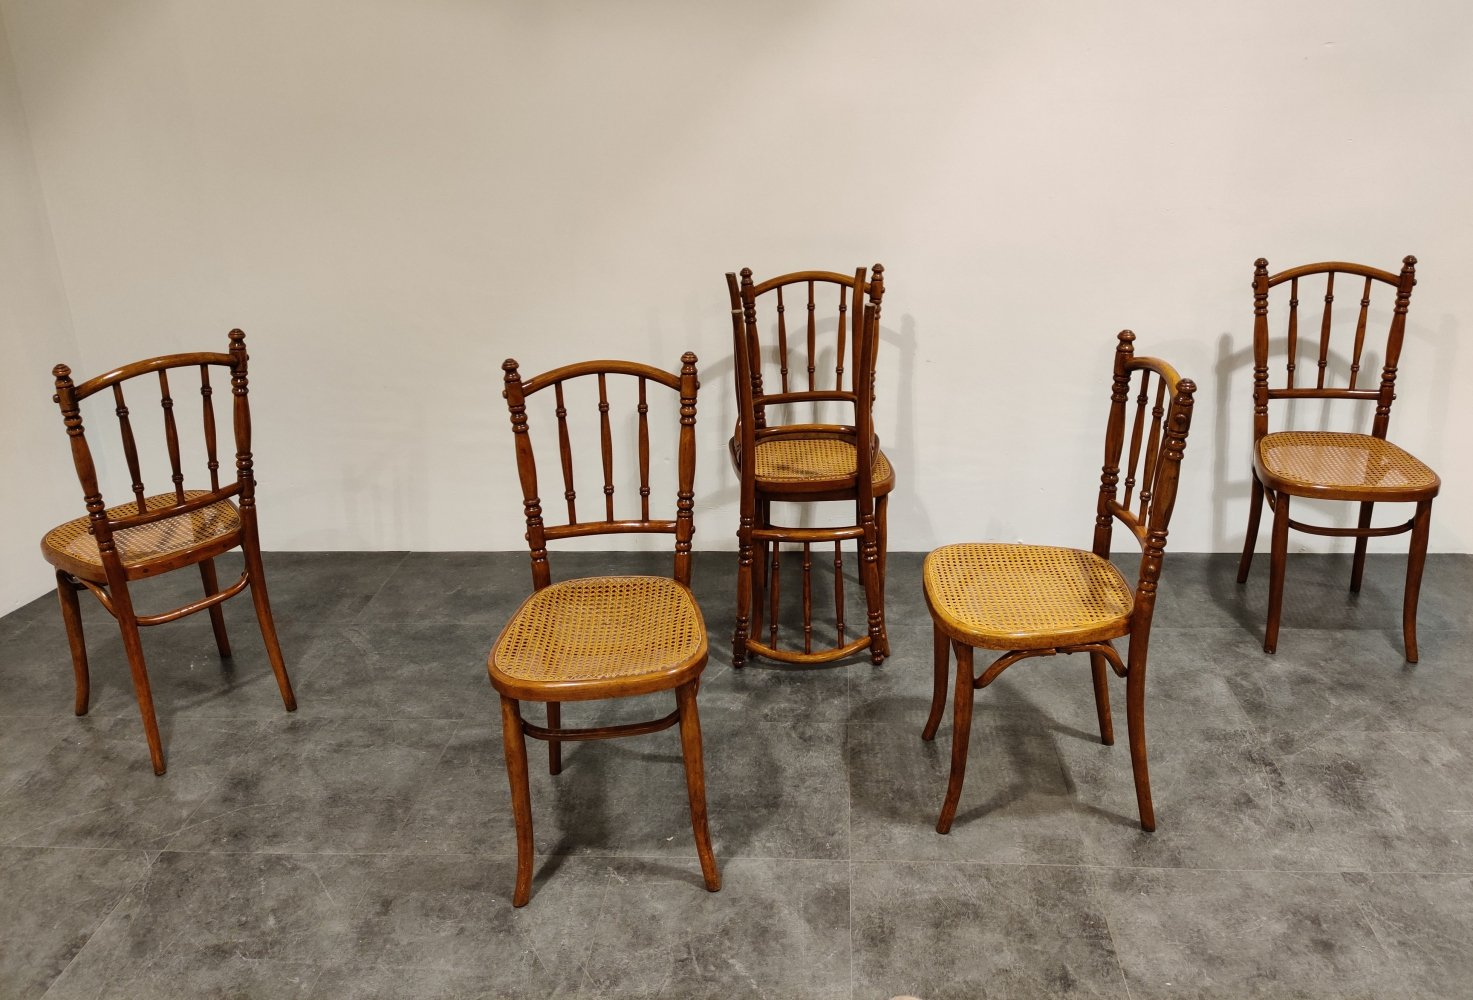 Set of 6 vintage bistro chairs, 1950s